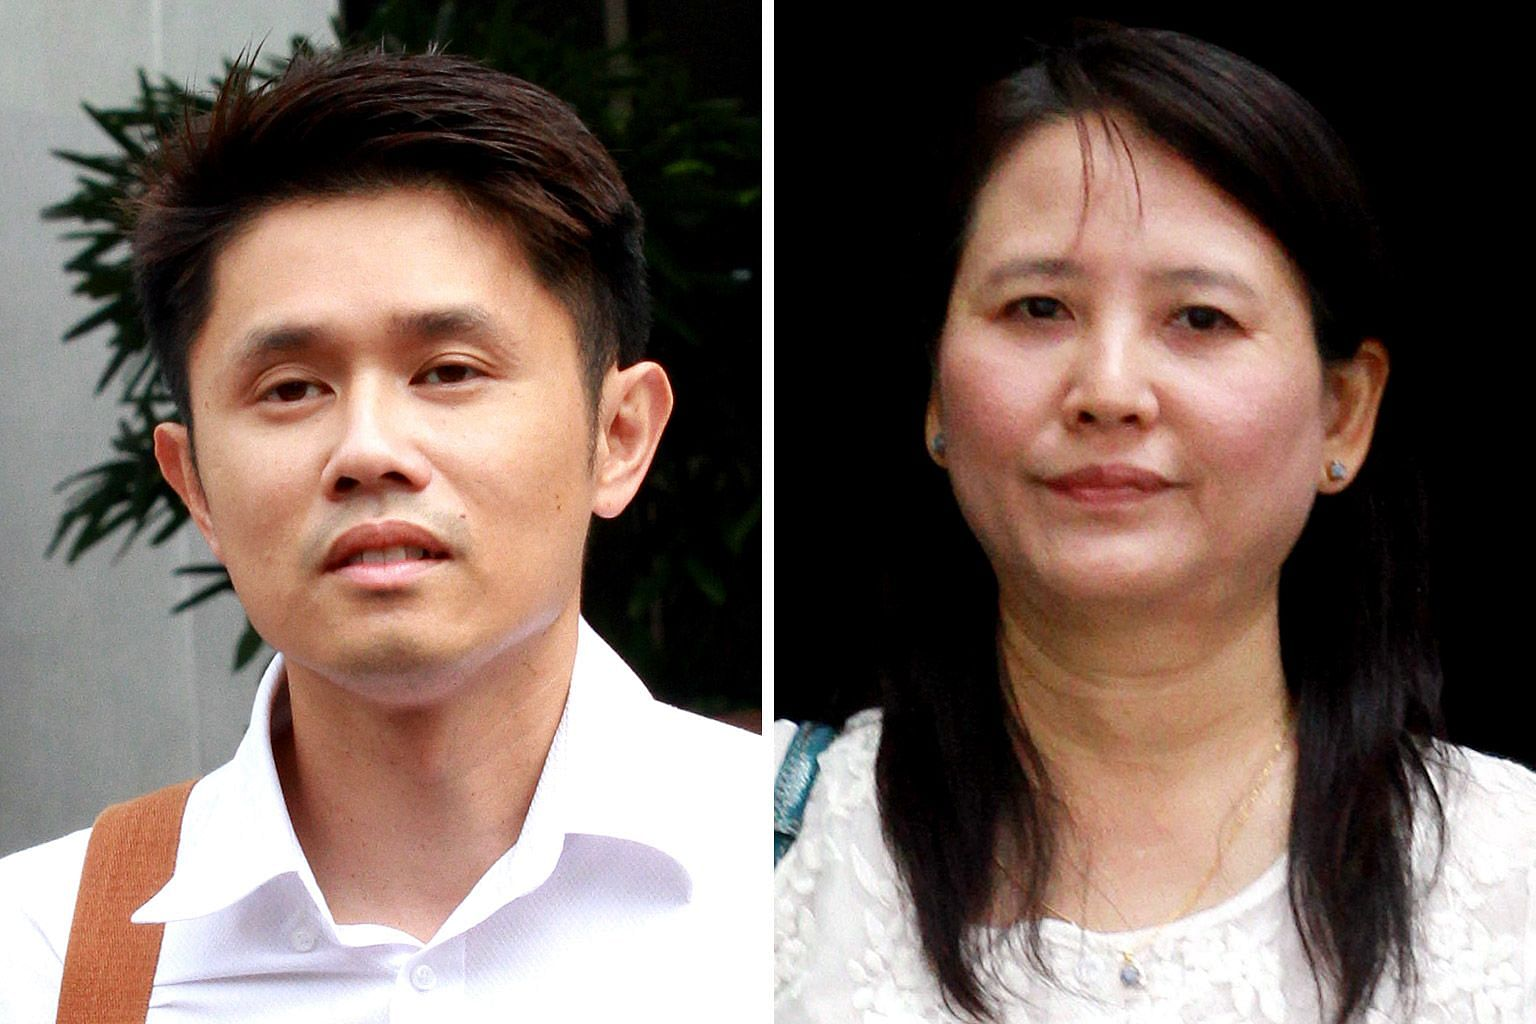 Former doctor Wong Meng Hang (above) was charged with one count of committing a rash act causing the death of Mr Franklin Heng in 2009, and Zhu Xiu Chun alias Myint Myint Kyi (below) was charged with one count of abetting Wong in his rash act.